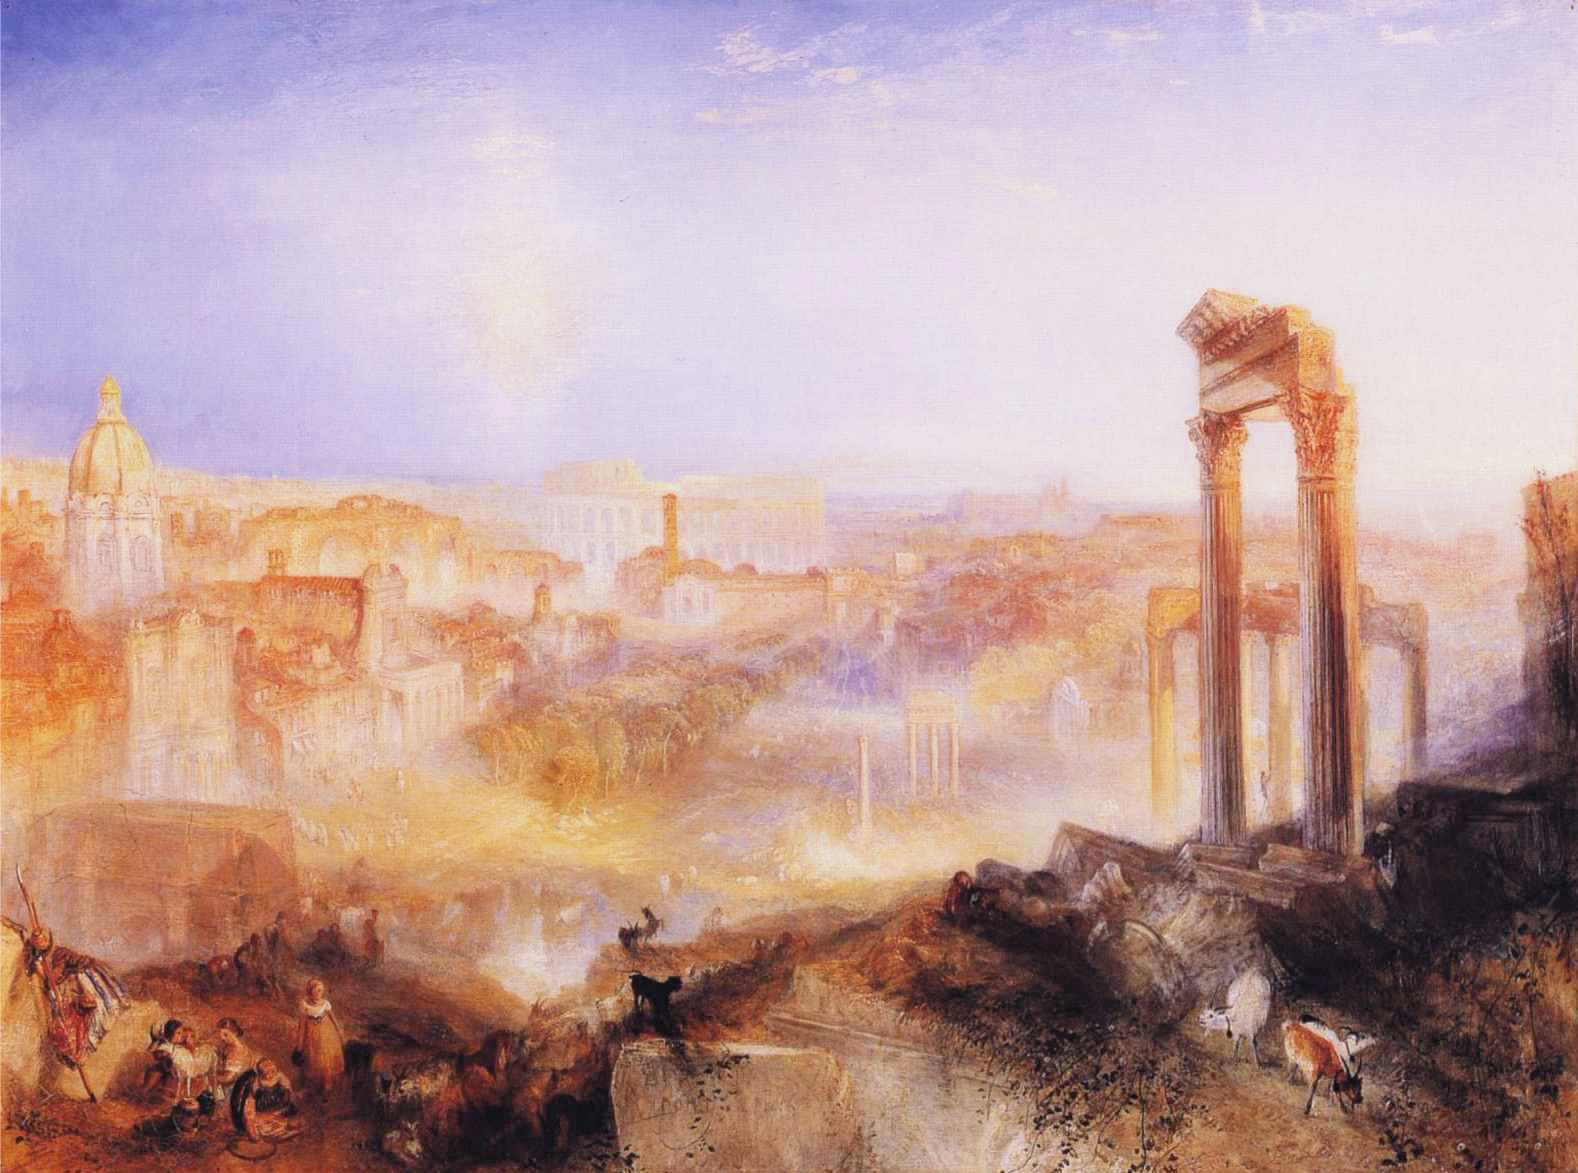 William Turner, Modern Rome - Campo Vacino, 1839, Sotheby's